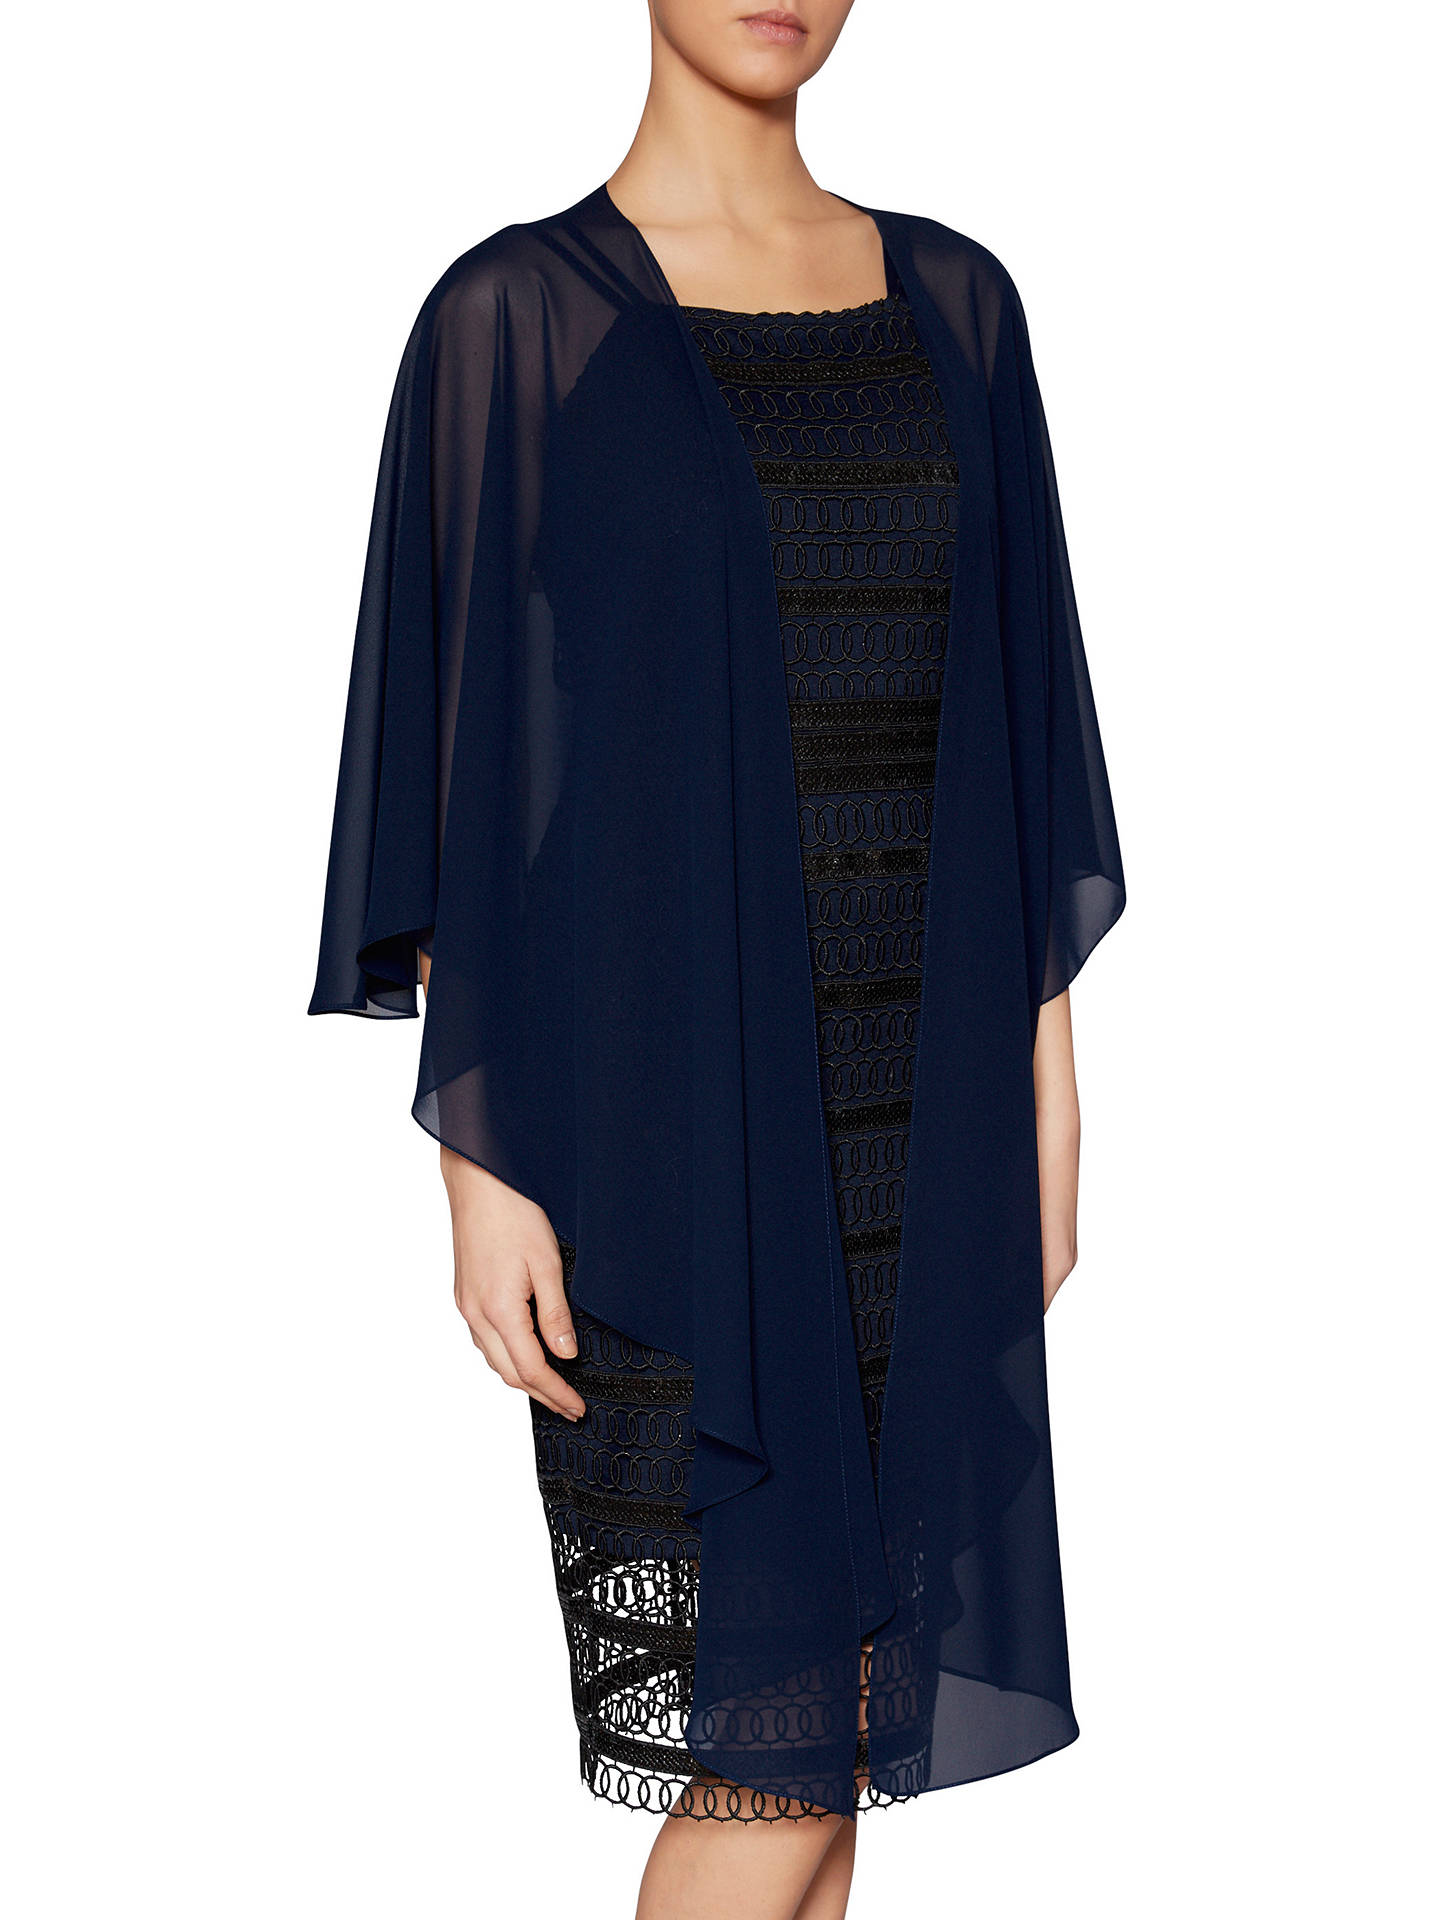 BuyGina Bacconi Shannon Sequin Guipure Dress, Black/Navy, 8 Online at johnlewis.com